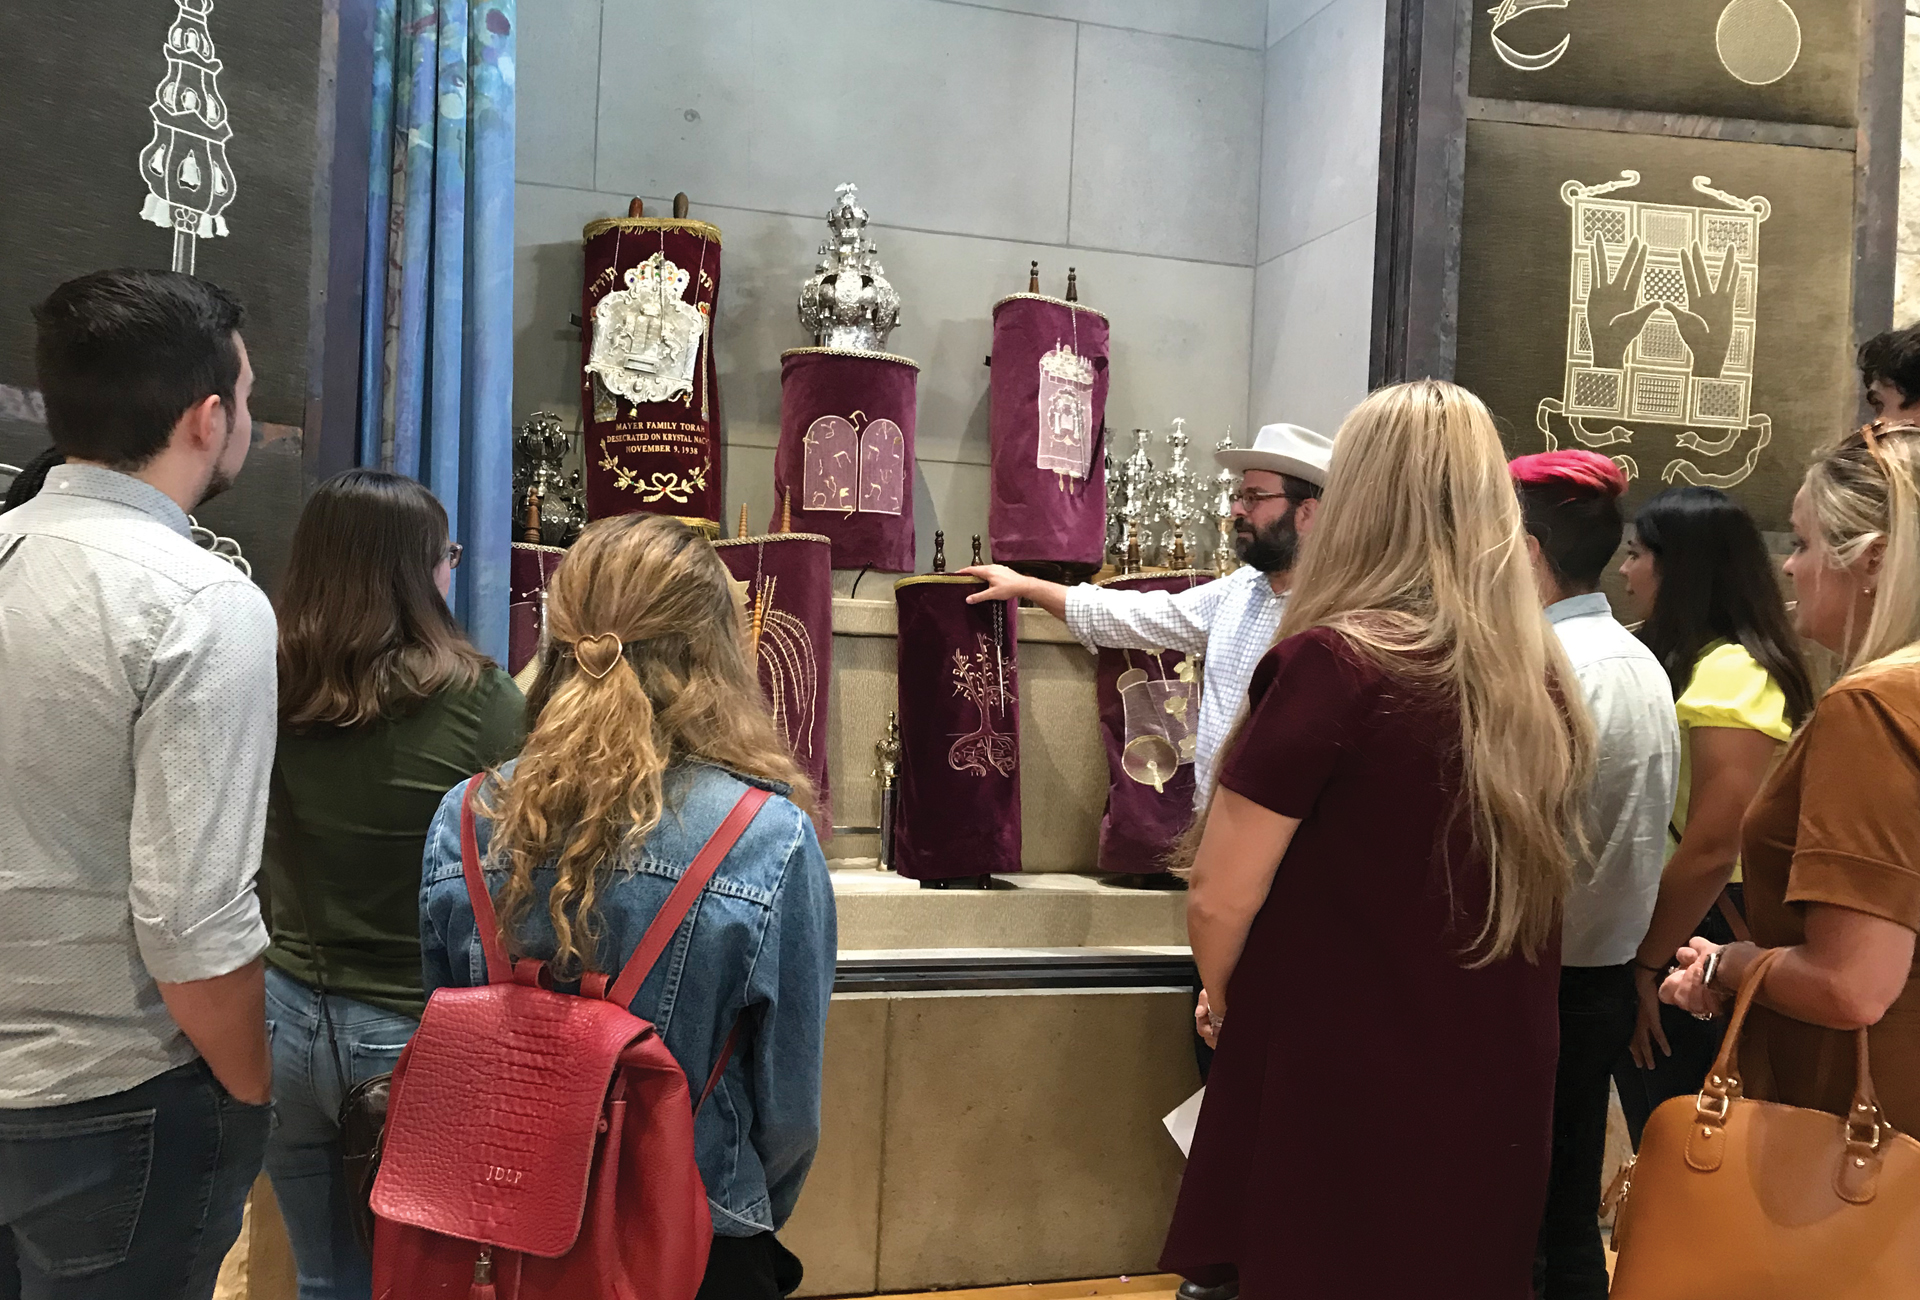 A group gathered around a collection of royal crowns and artifacts